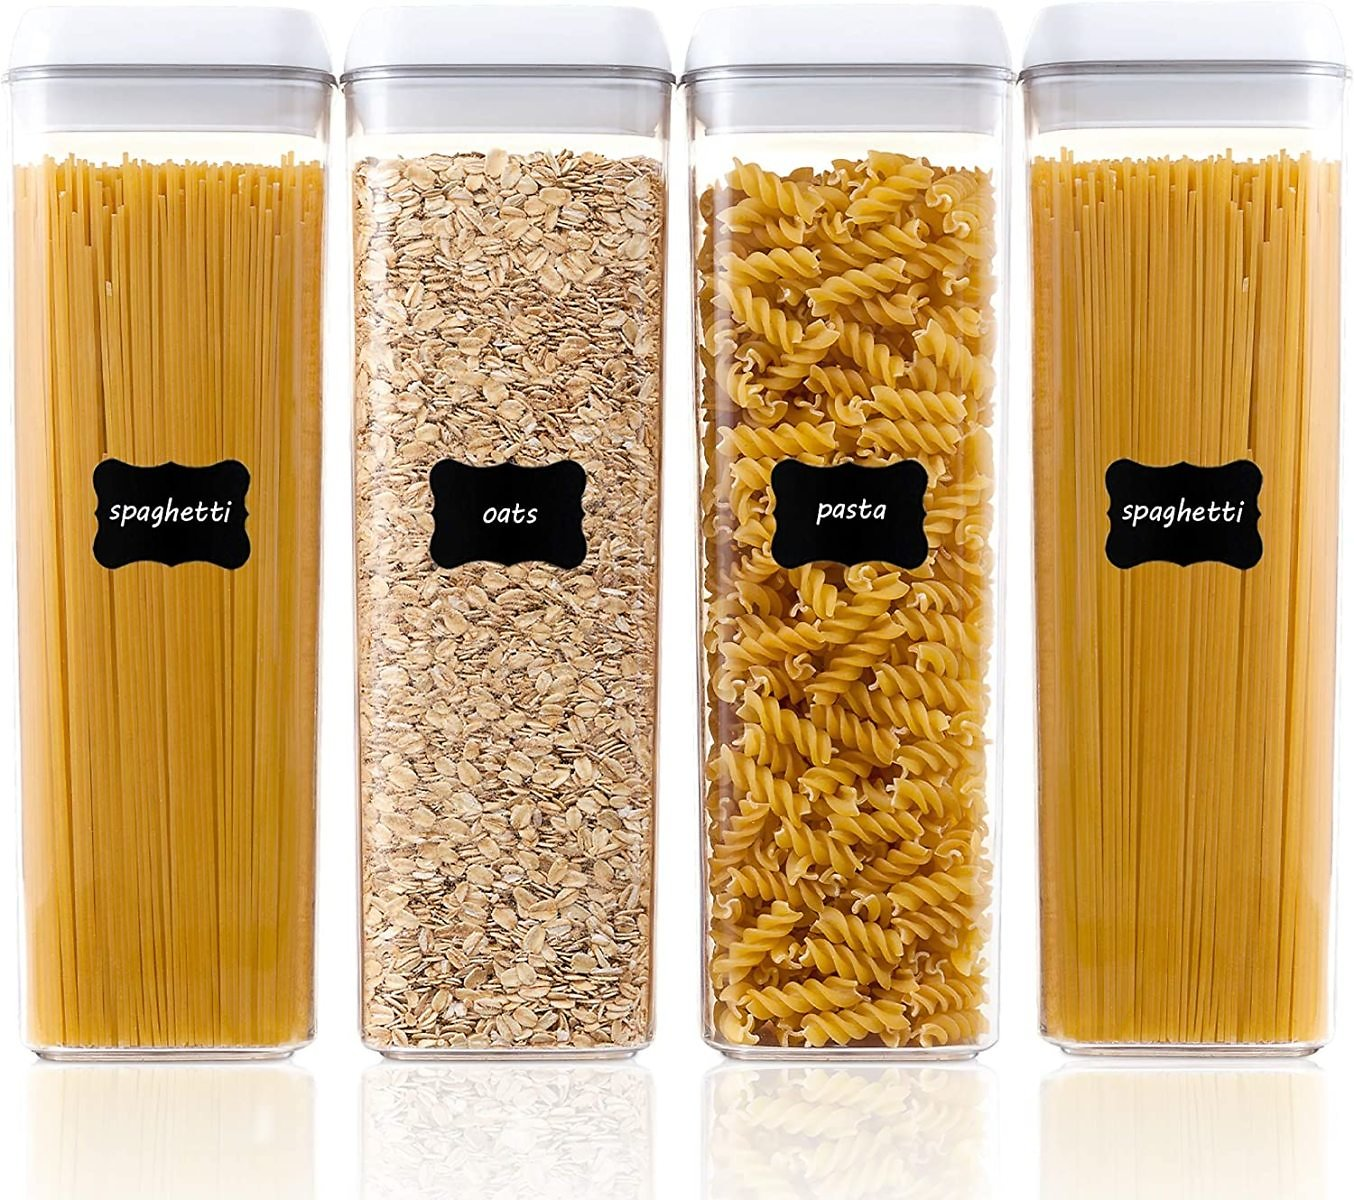 Airtight Food Storage Containers, Vtopmart 4 Pieces BPA Free Plastic Spaghetti Containers with Easy Lock Lids, for Kitchen Pantry Organization and Storage, Include 24 Labels